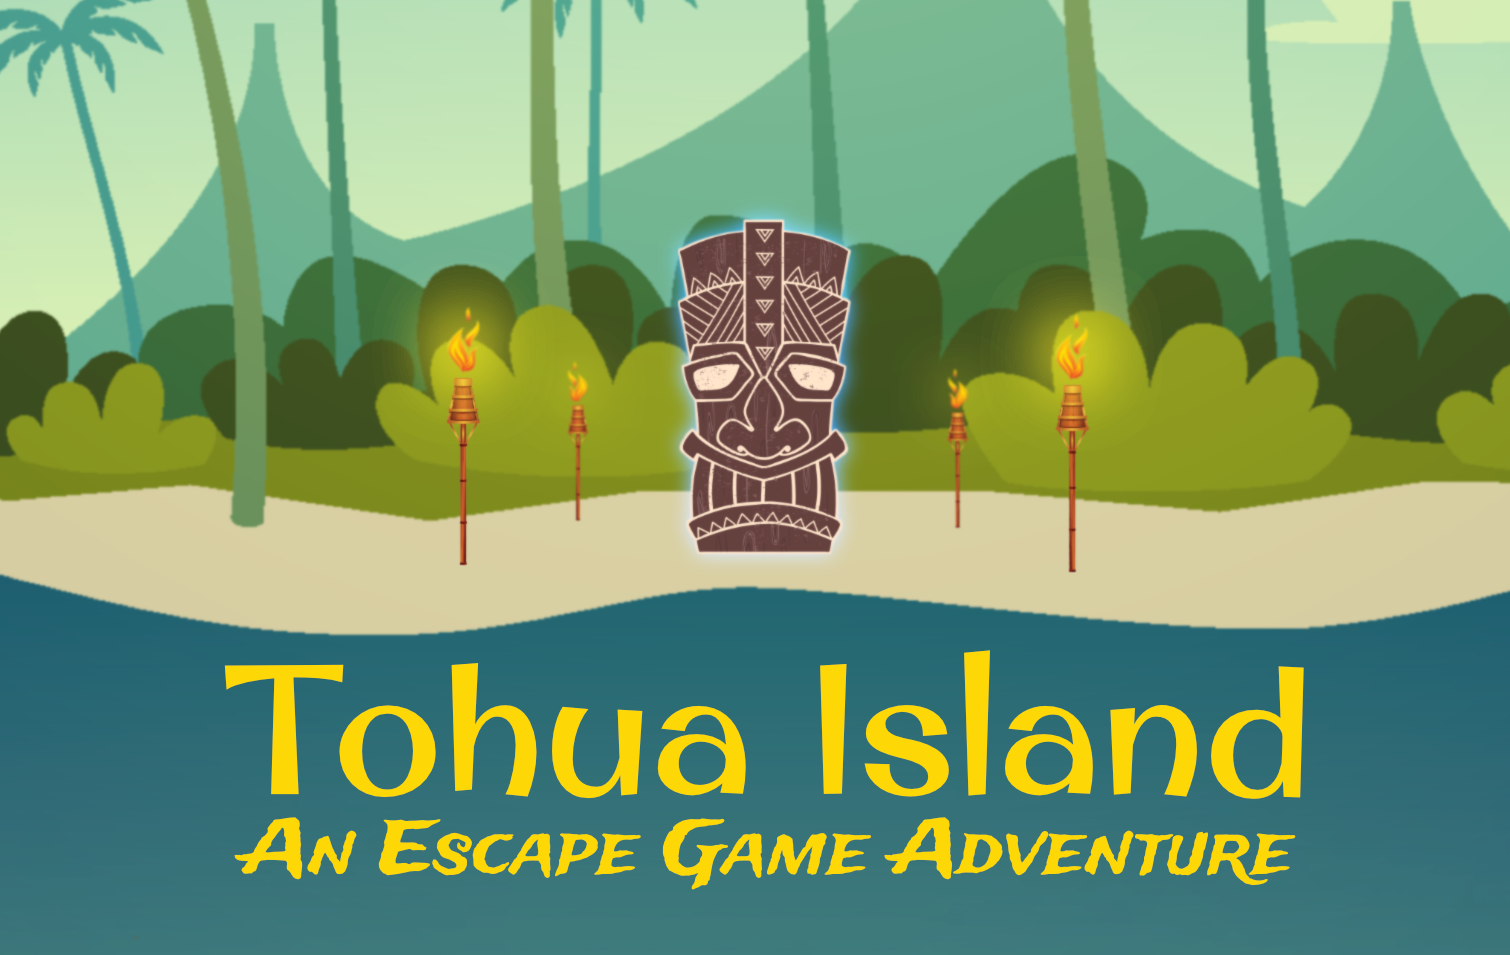 TOHUA ISLAND - Te Aroha, sorceress of the soul and wife of Tāwhirimātea, the god of wind and storms, has become angry with your island. As punishment, she has unleashed Tāwhirimātea's elemental children. They will wreak havoc on your small island if they are not found and put back in their places.Can you work together to gather their tikis and save Tohua Island?Tohua Island is a 1 hour+ game, designed for 12-64 players.